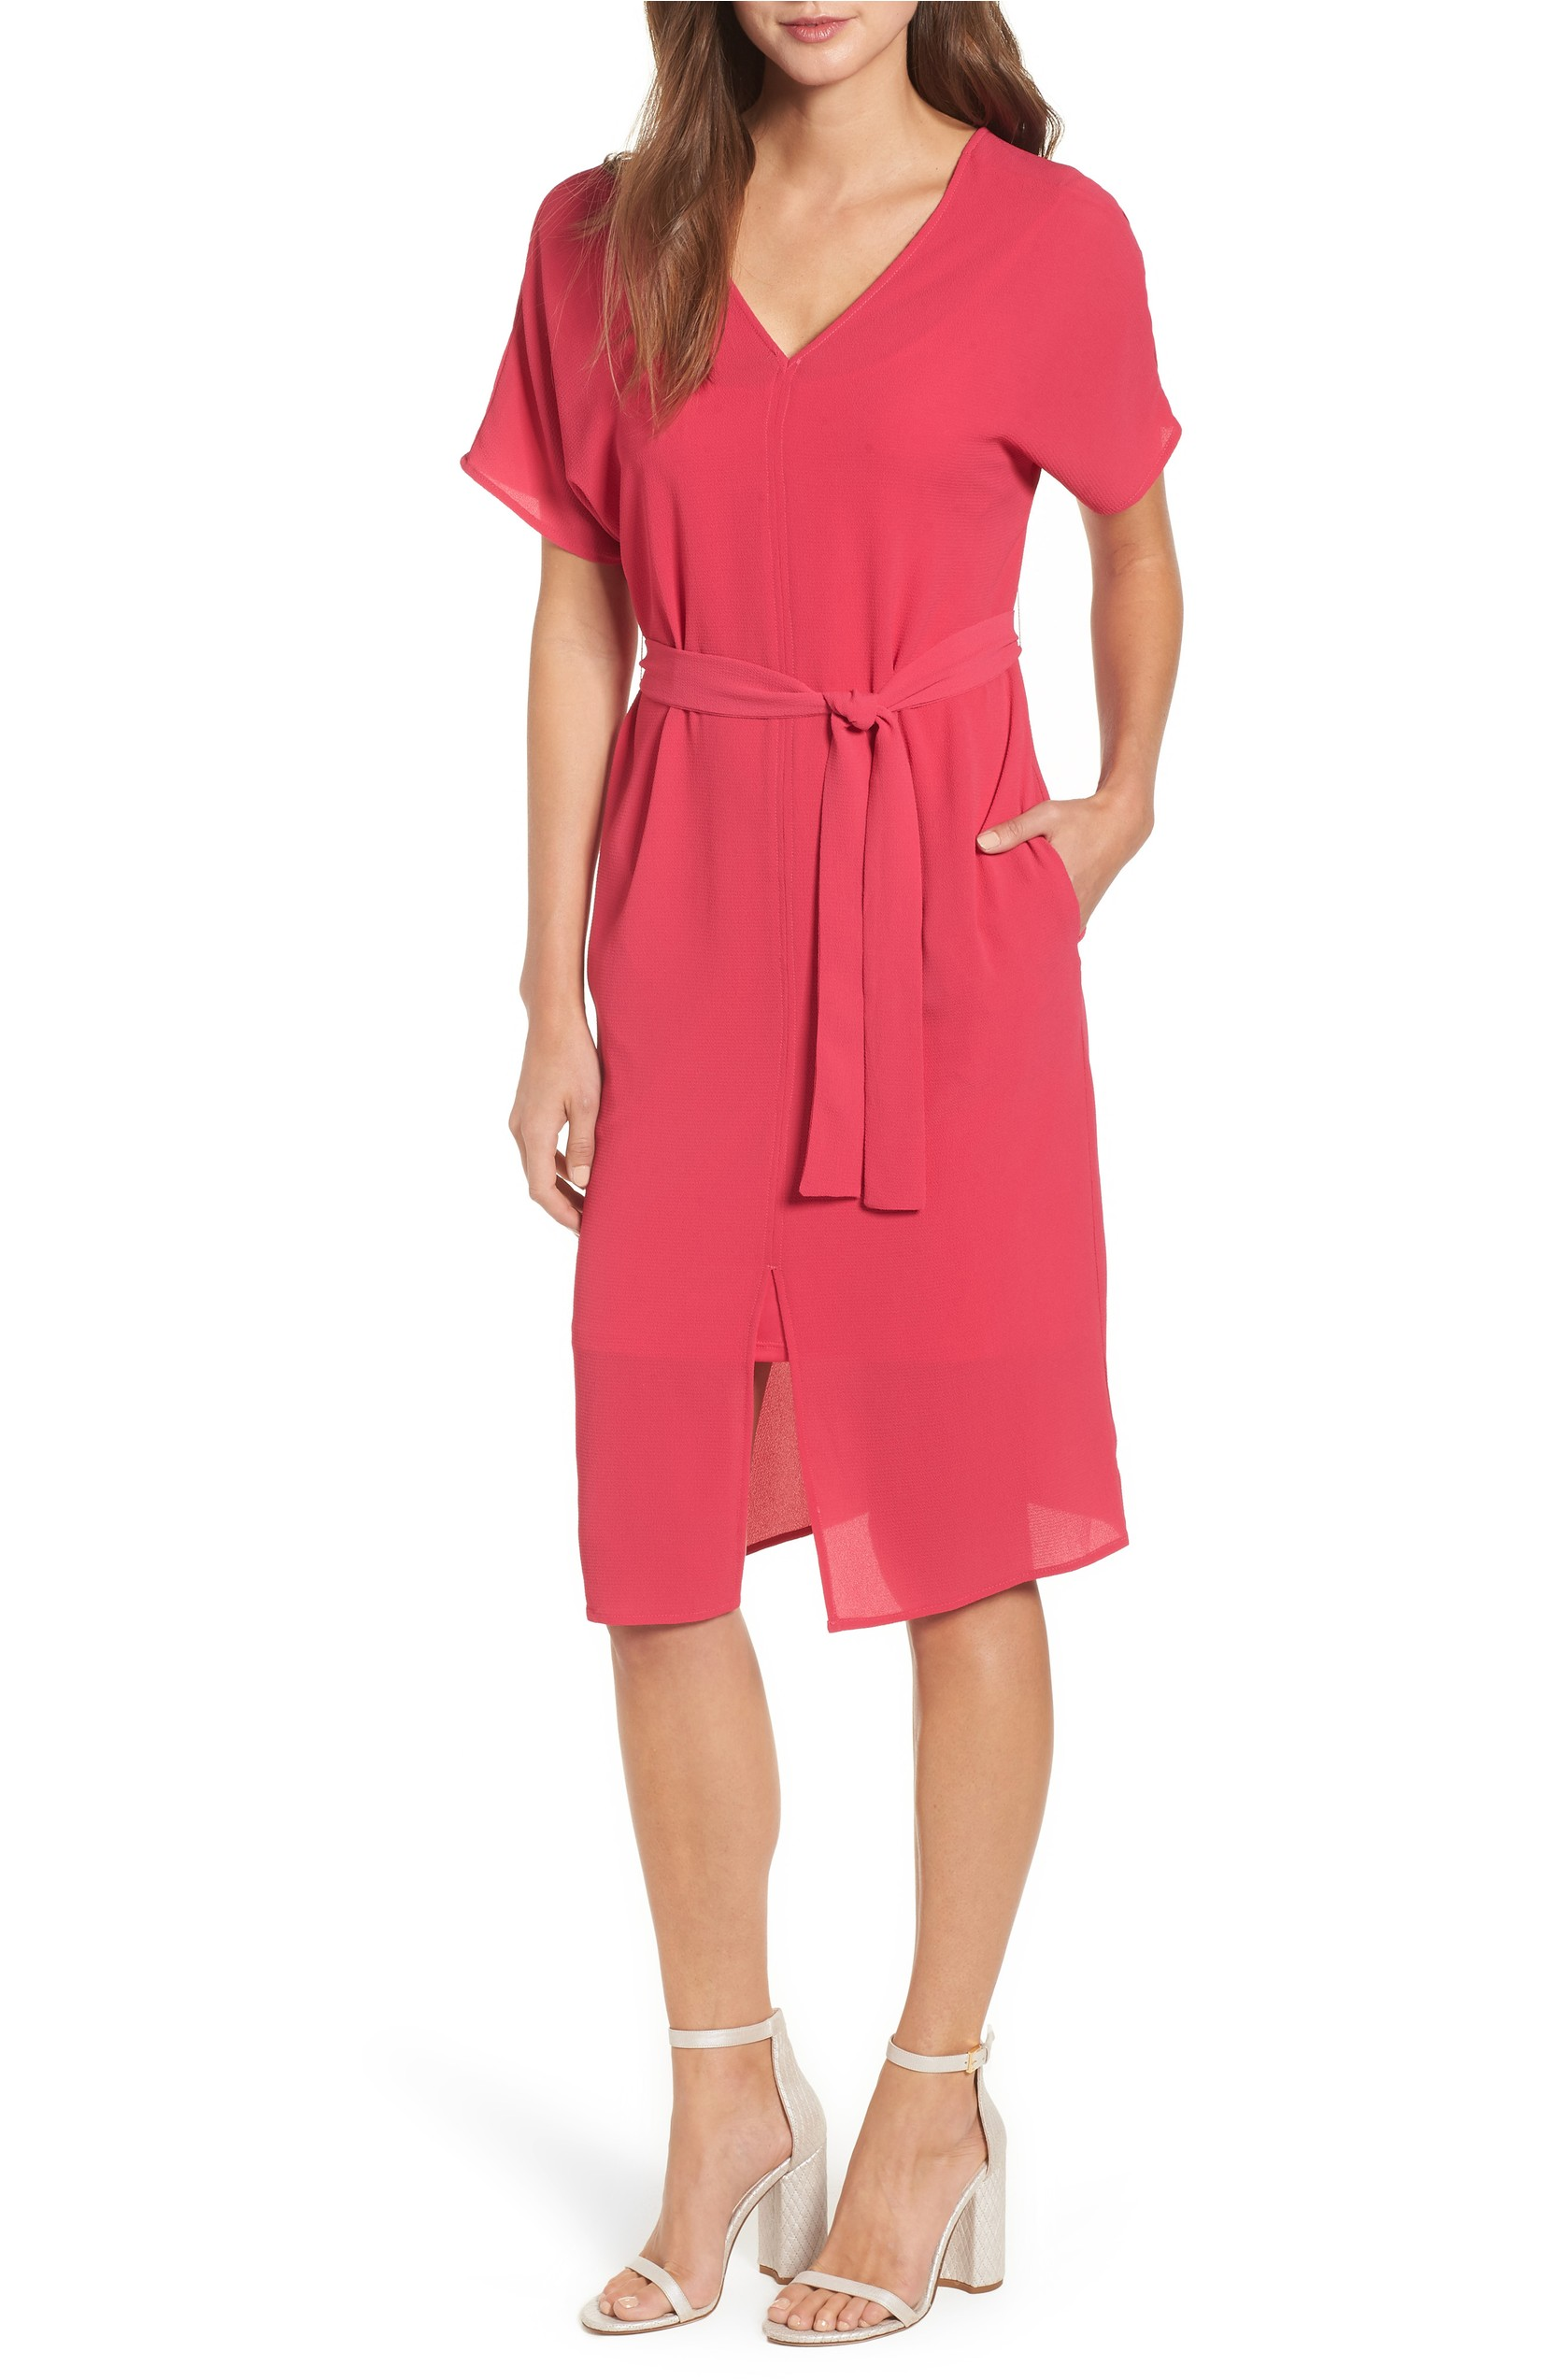 This Stretch Crepe Dress was originally $59 and is now $39.53. Simple seaming and clean lines elevate an essential dress with a belted waist.<p>(Image: Nordstrom)</p>